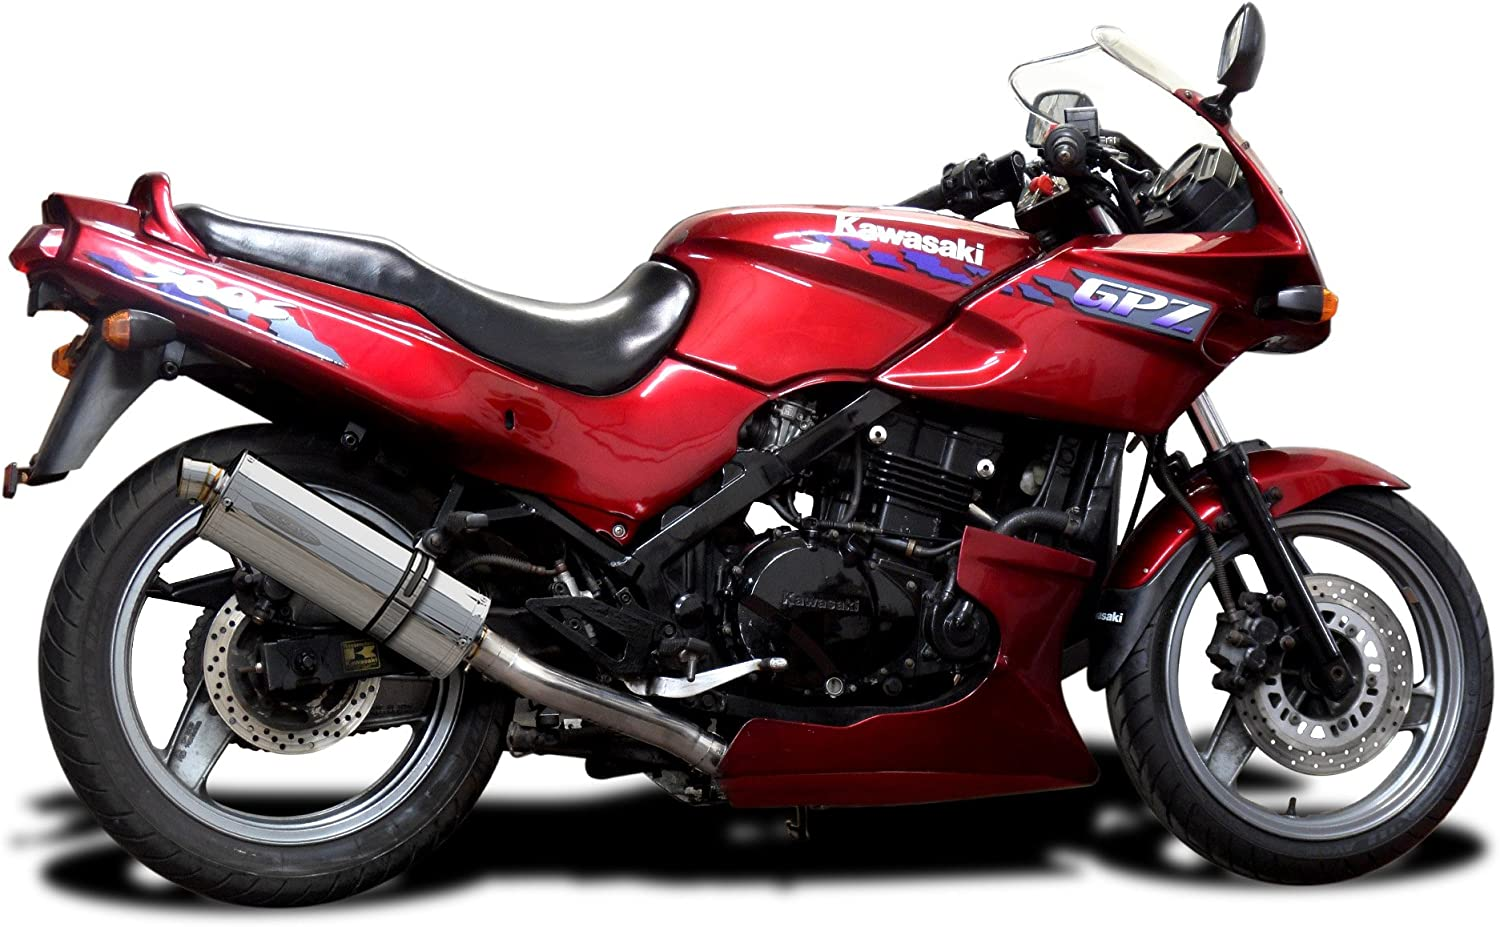 Delkevic Full 2-1 compatible with Kawasaki GPZ500S EX500 Stubby 14 Stainless Steel Oval Muffler Exhaust 87-09